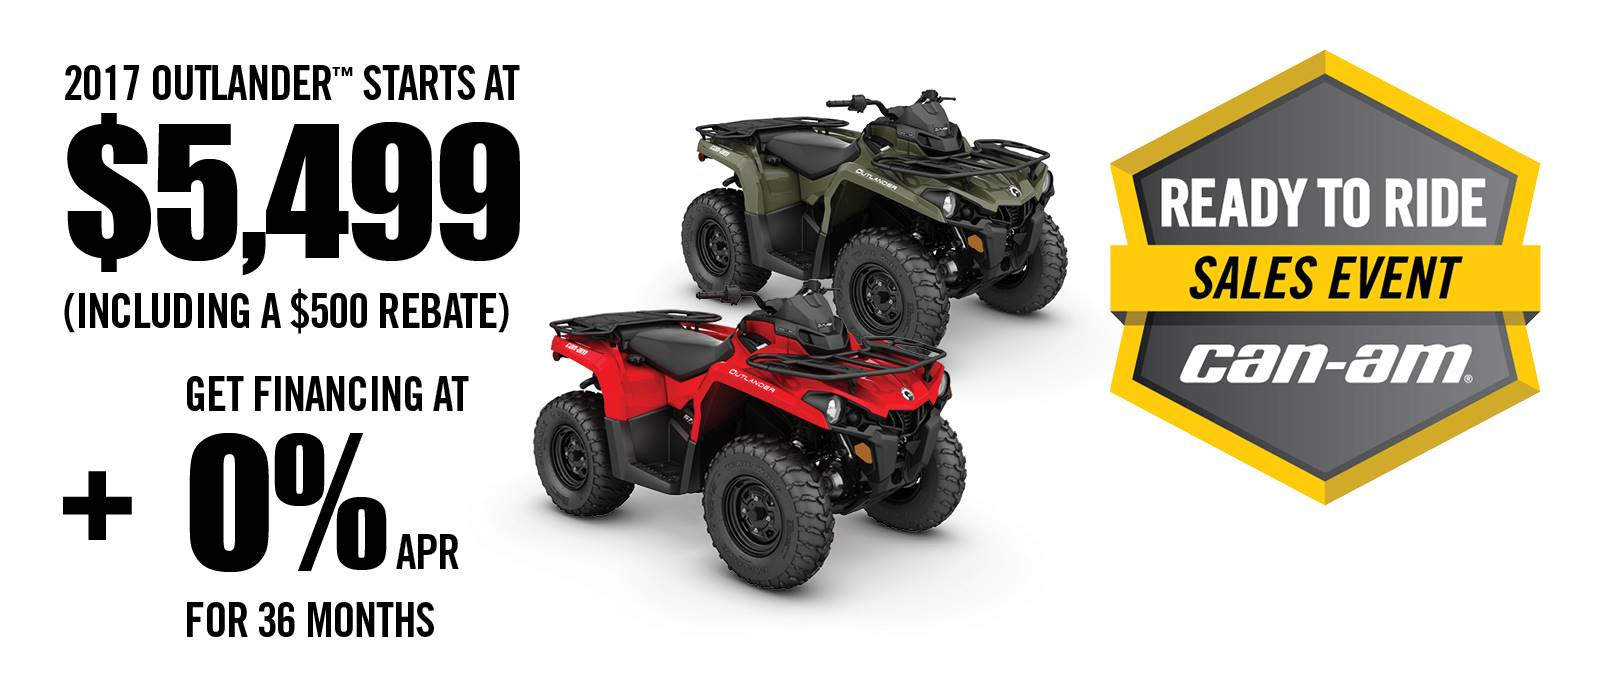 Can-Am Ready to Ride Sales Event Outlander